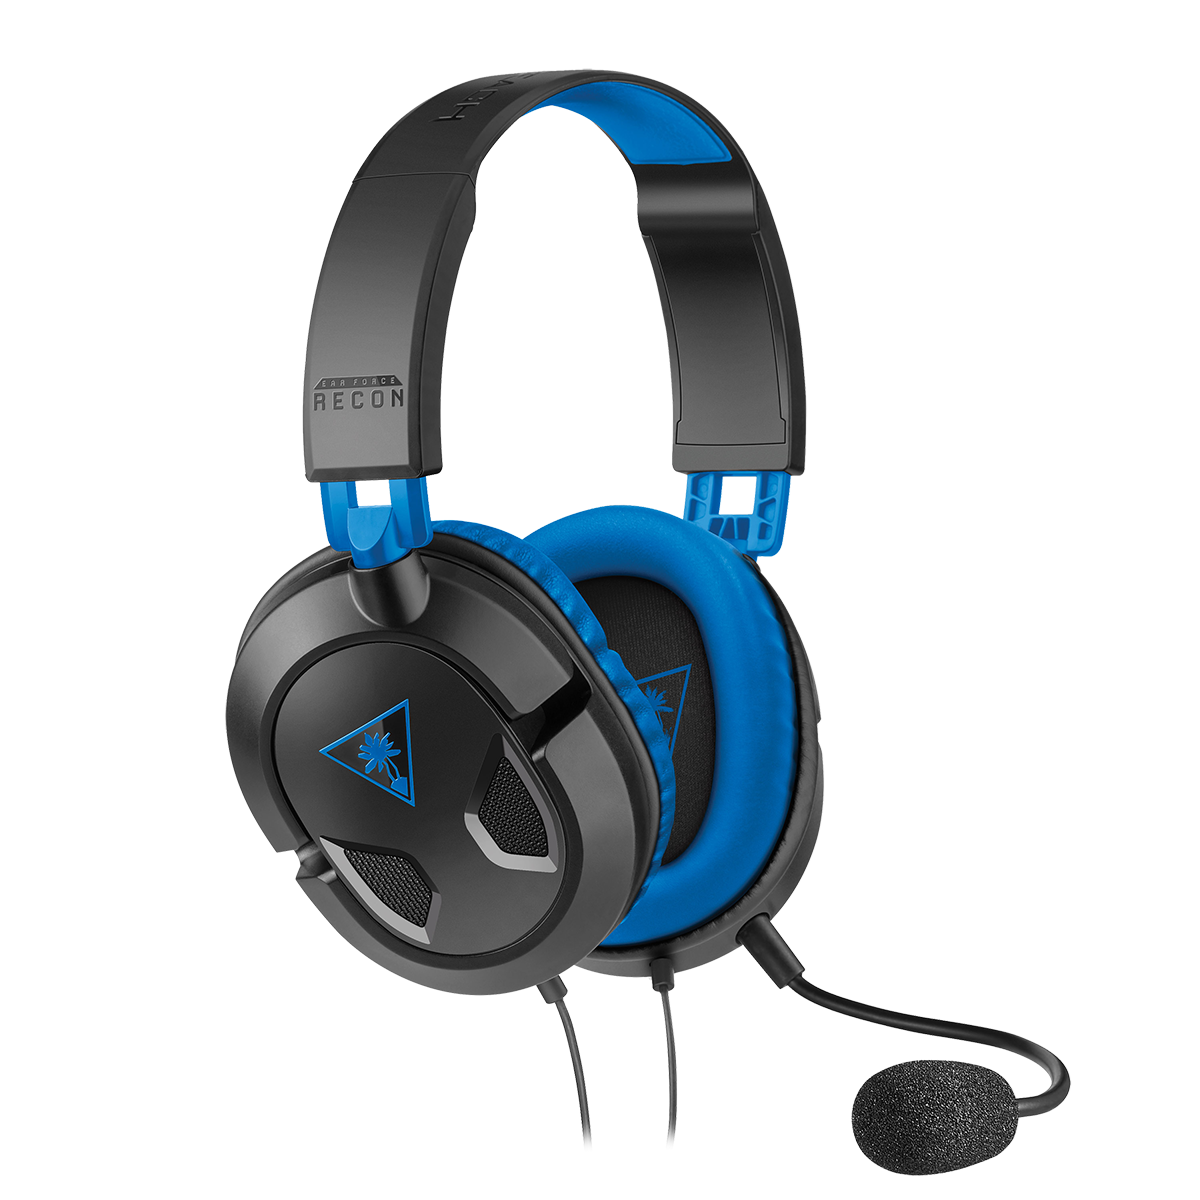 Recon 60P Gaming Headset - PS4, Nintendo Switch